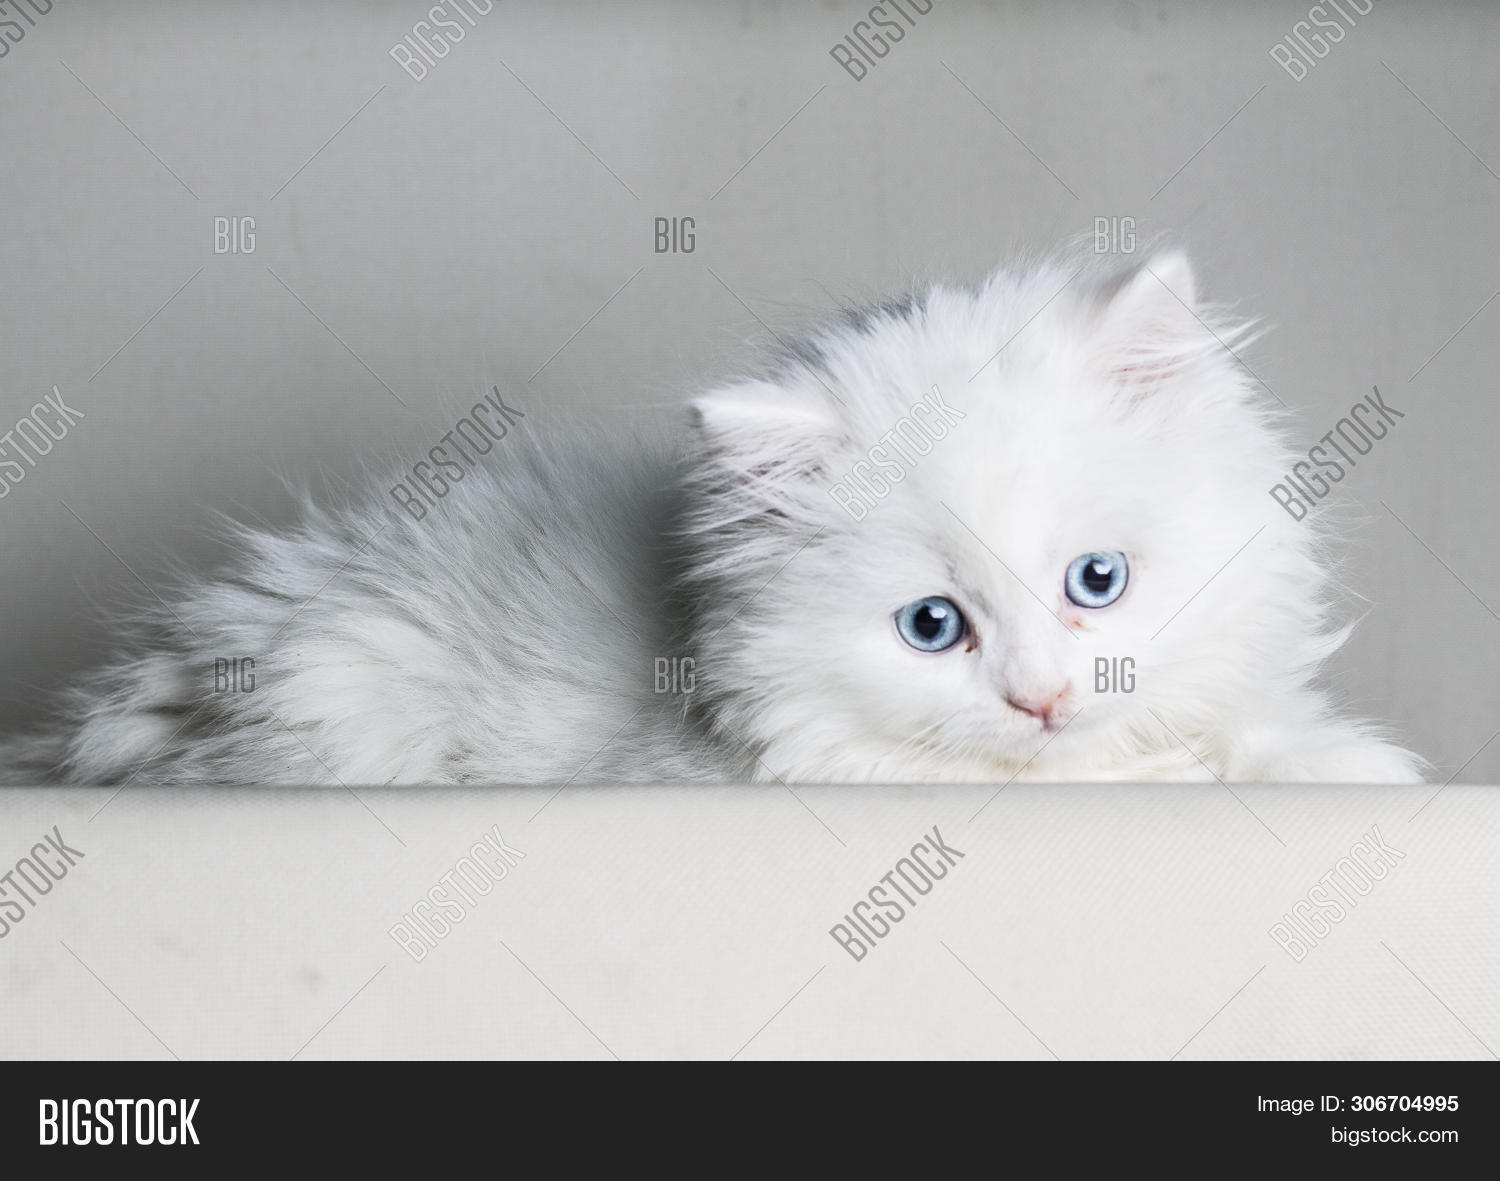 White Persian Cat Image Photo Free Trial Bigstock